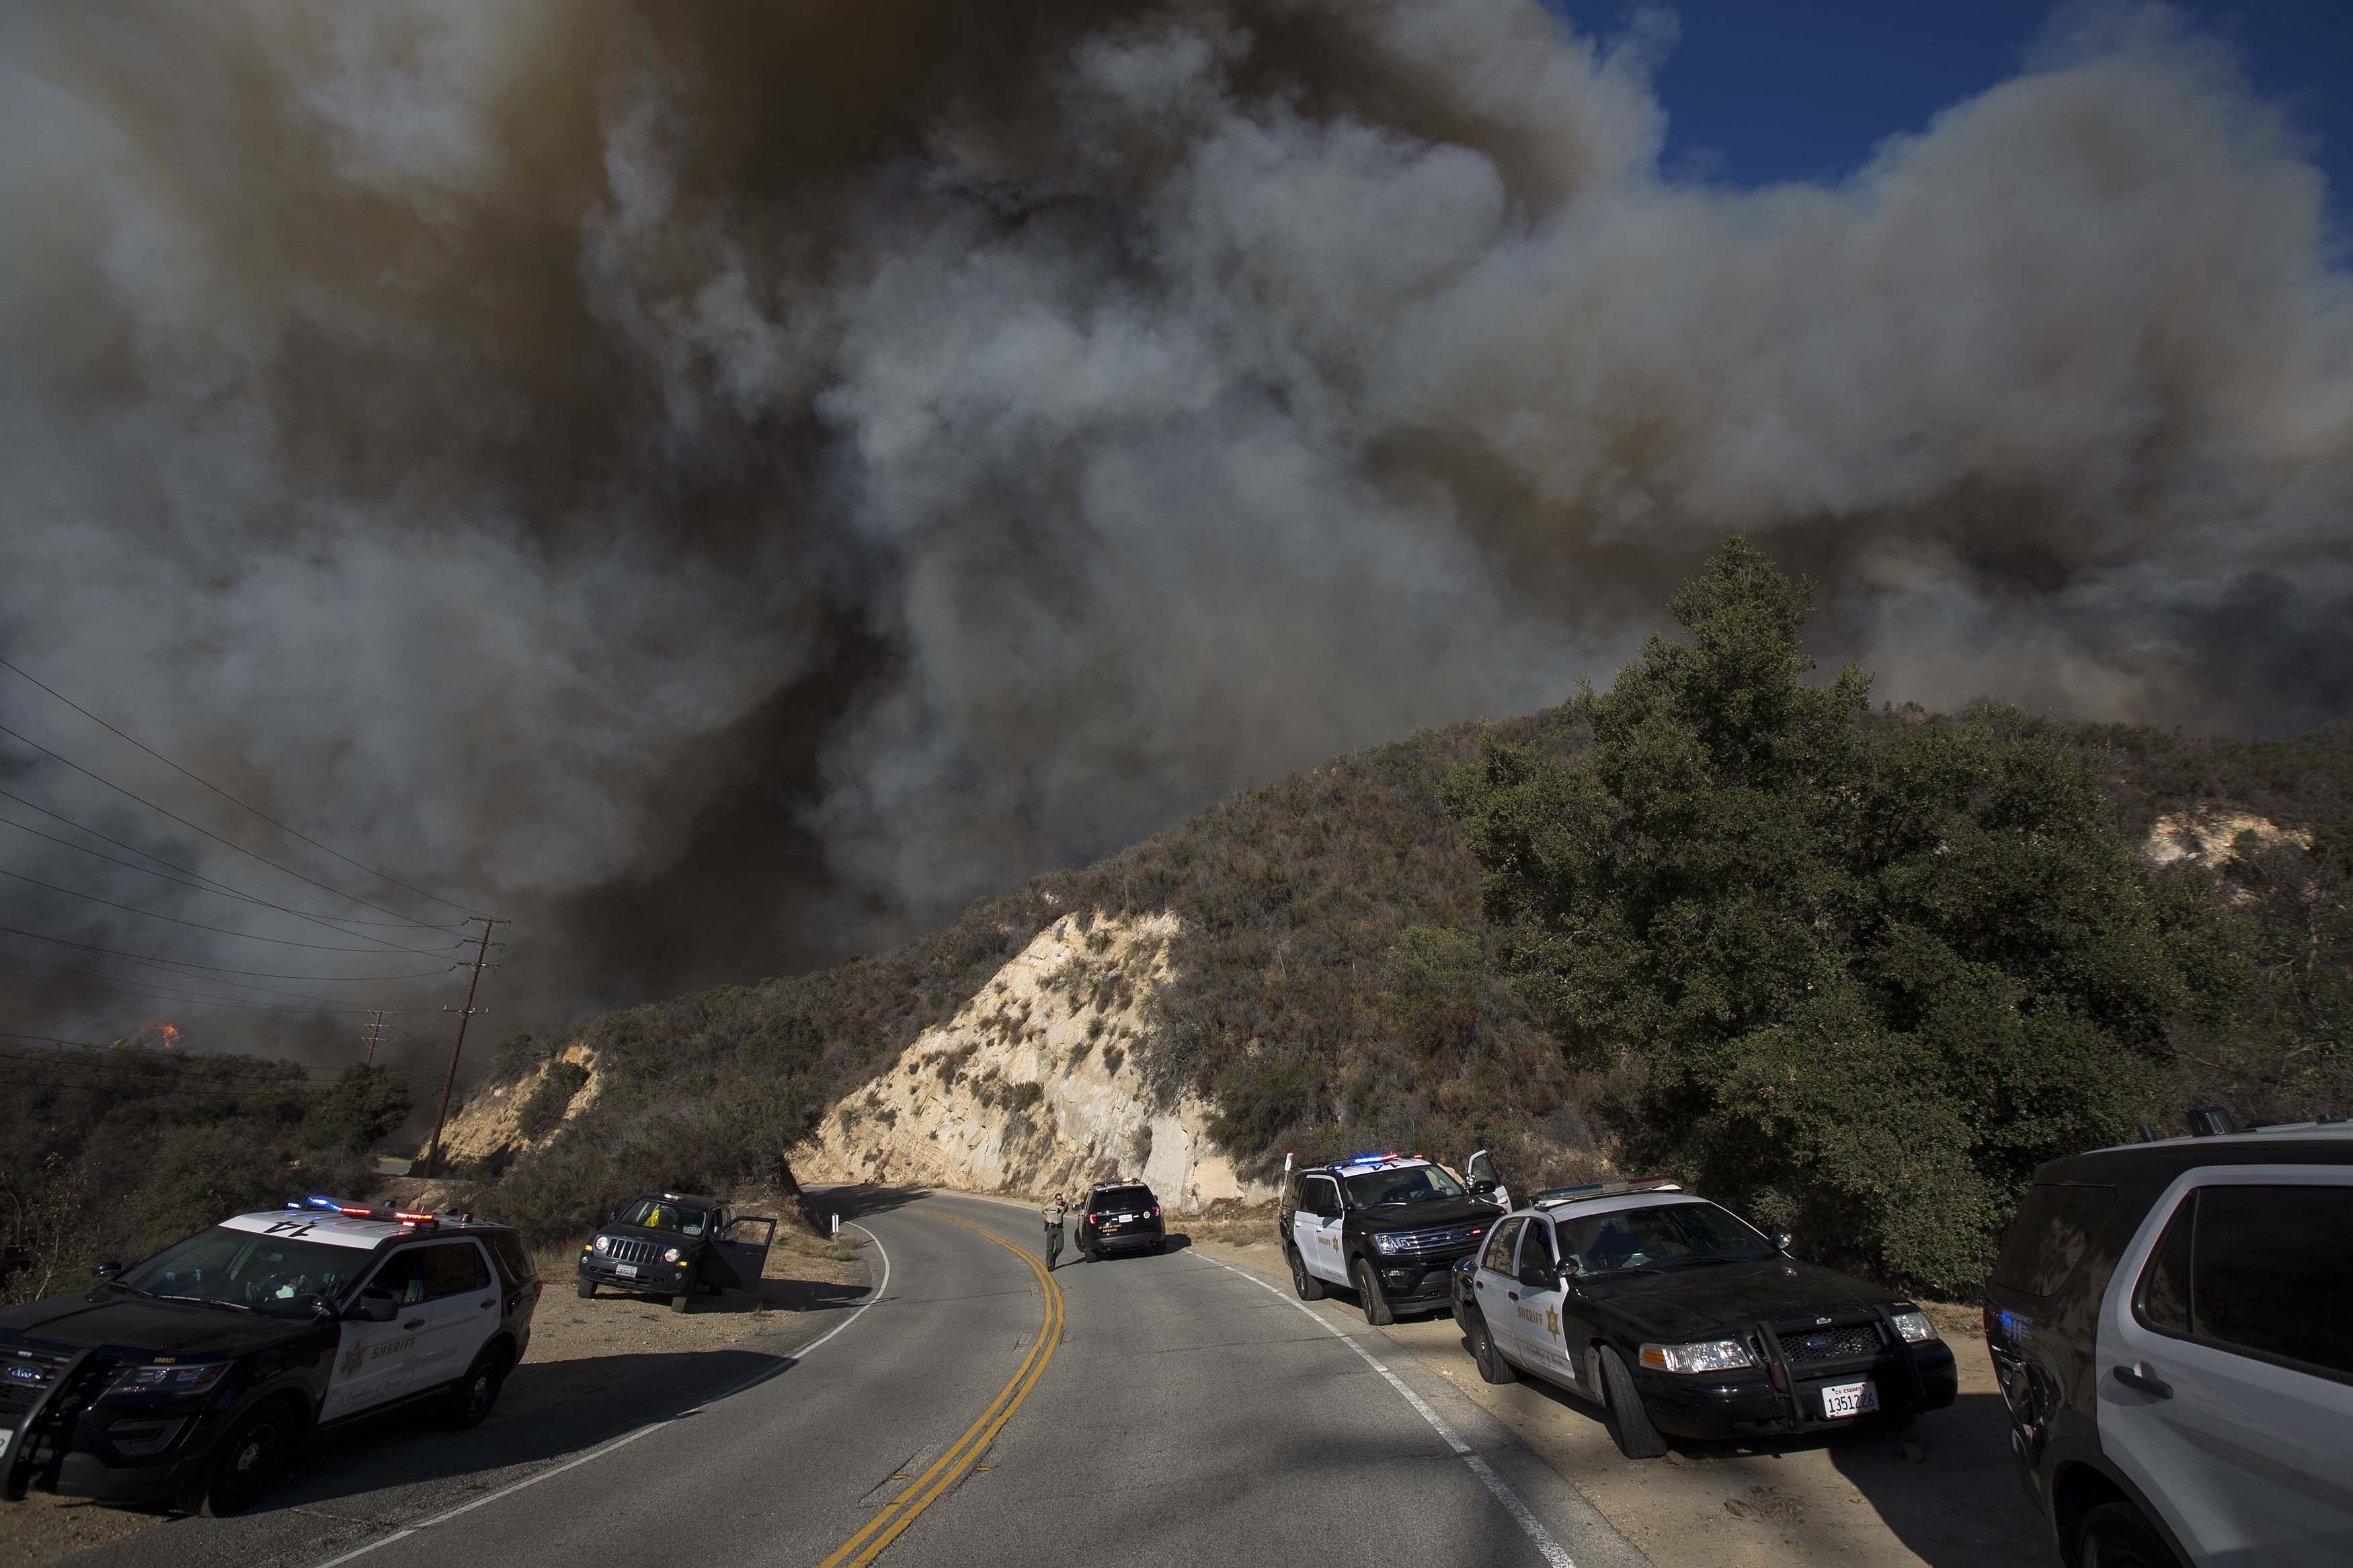 MALIBU, CA - NOVEMBER 09: Wind-driven flames move across Malibu Creek State Park during the Woolsey Fire on November 9, 2018 near Malibu, California. After a experiencing a mass shooting, residents of Thousand Oaks are threatened by the ignition of two nearby dangerous wildfires, including the Woolsey Fire which has reached the Pacific Coast at Malibu. (Photo by David McNew/Getty Images)